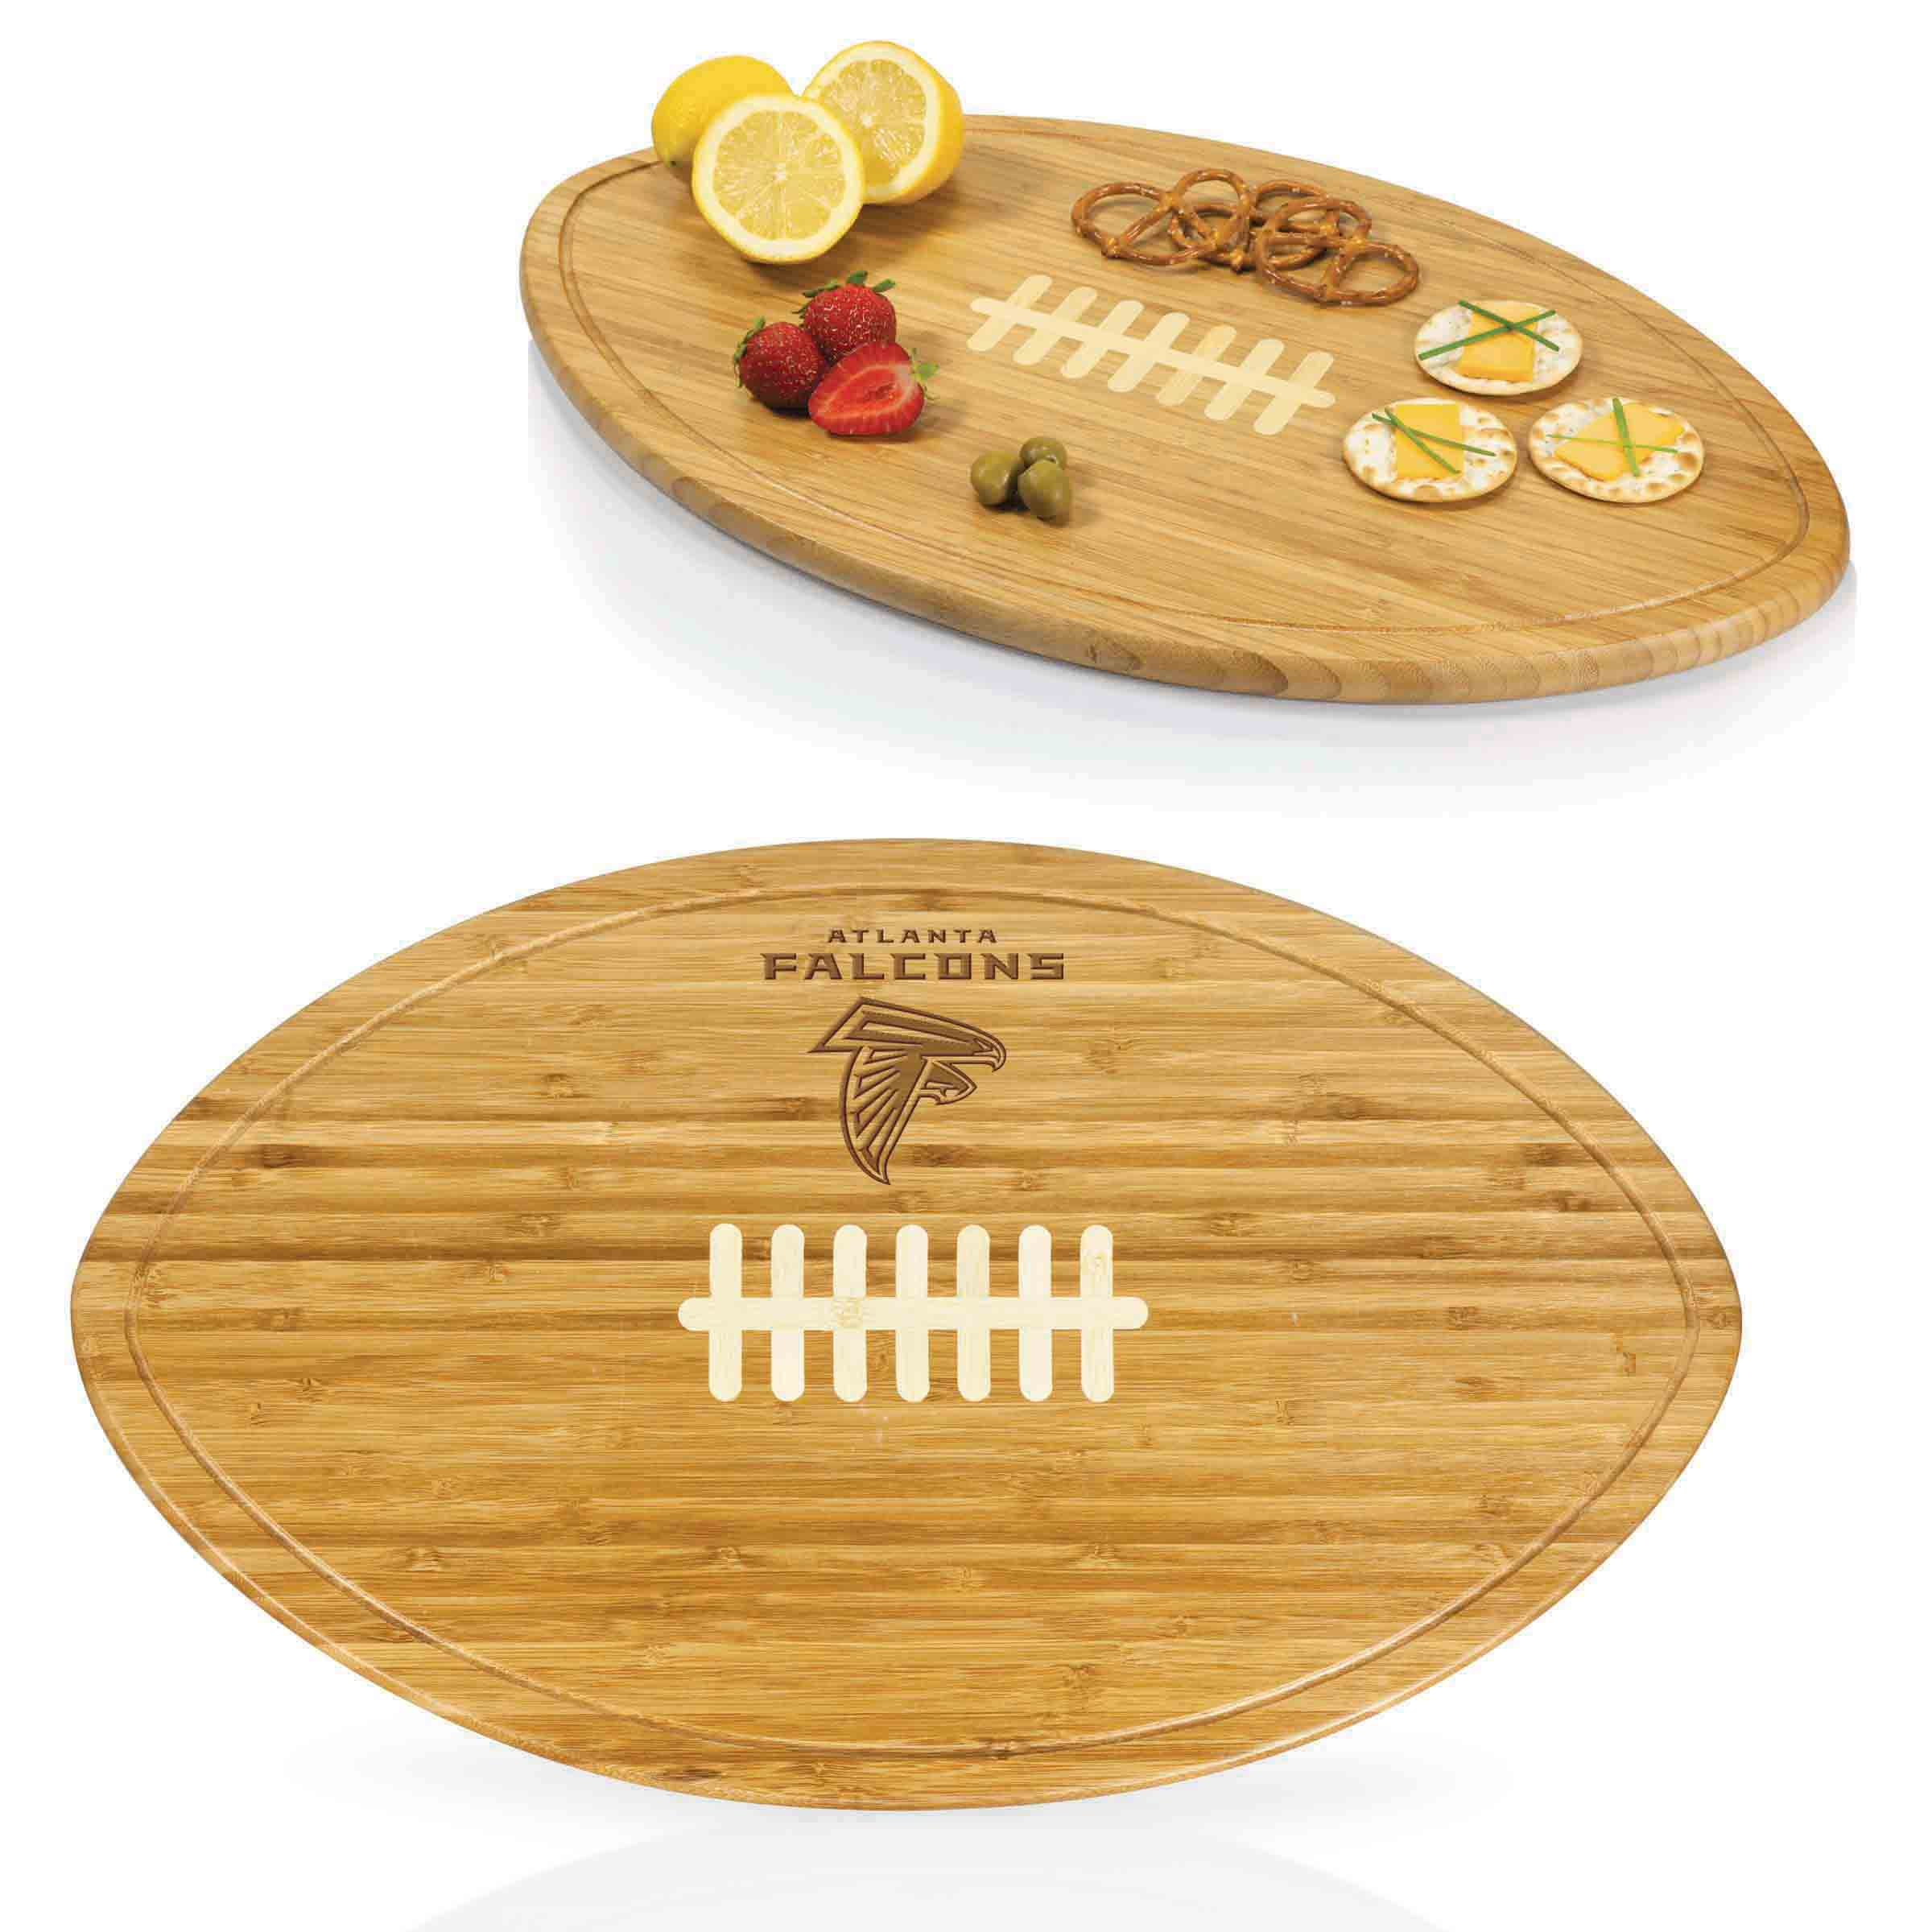 Atlanta Falcons Kickoff Cutting Board - No Size